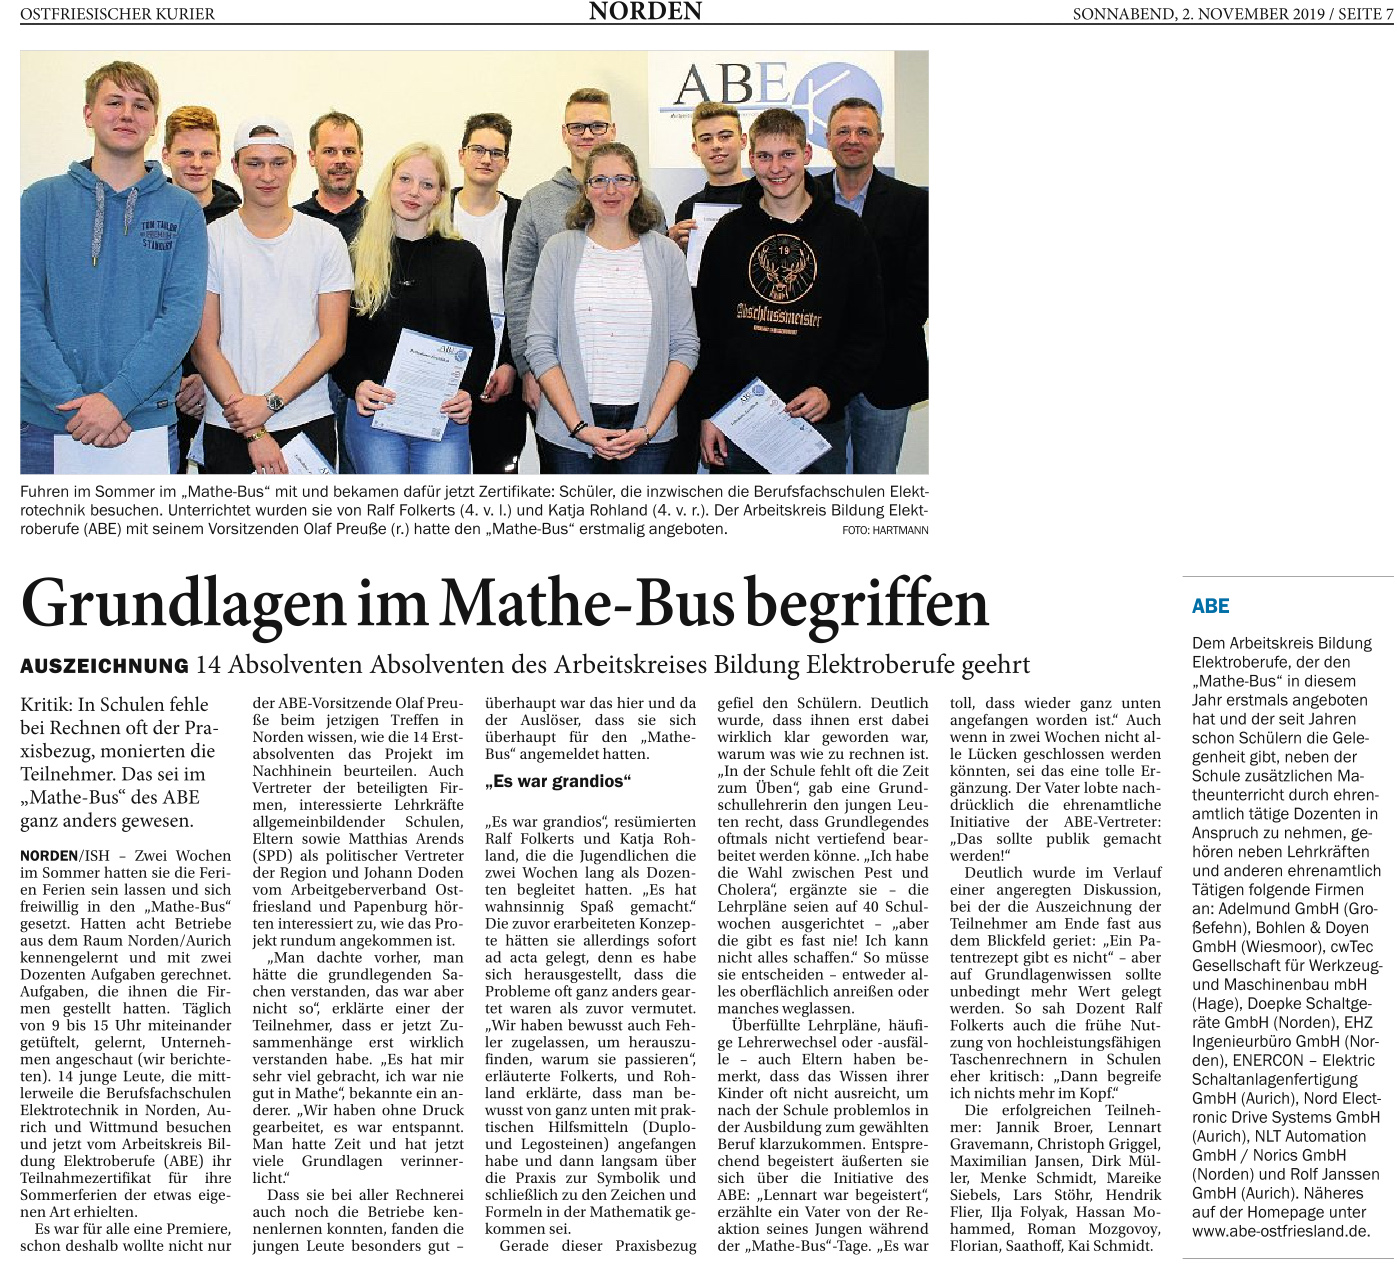 OK - 2019-11-02 - Mathe-Bus - Auswertung